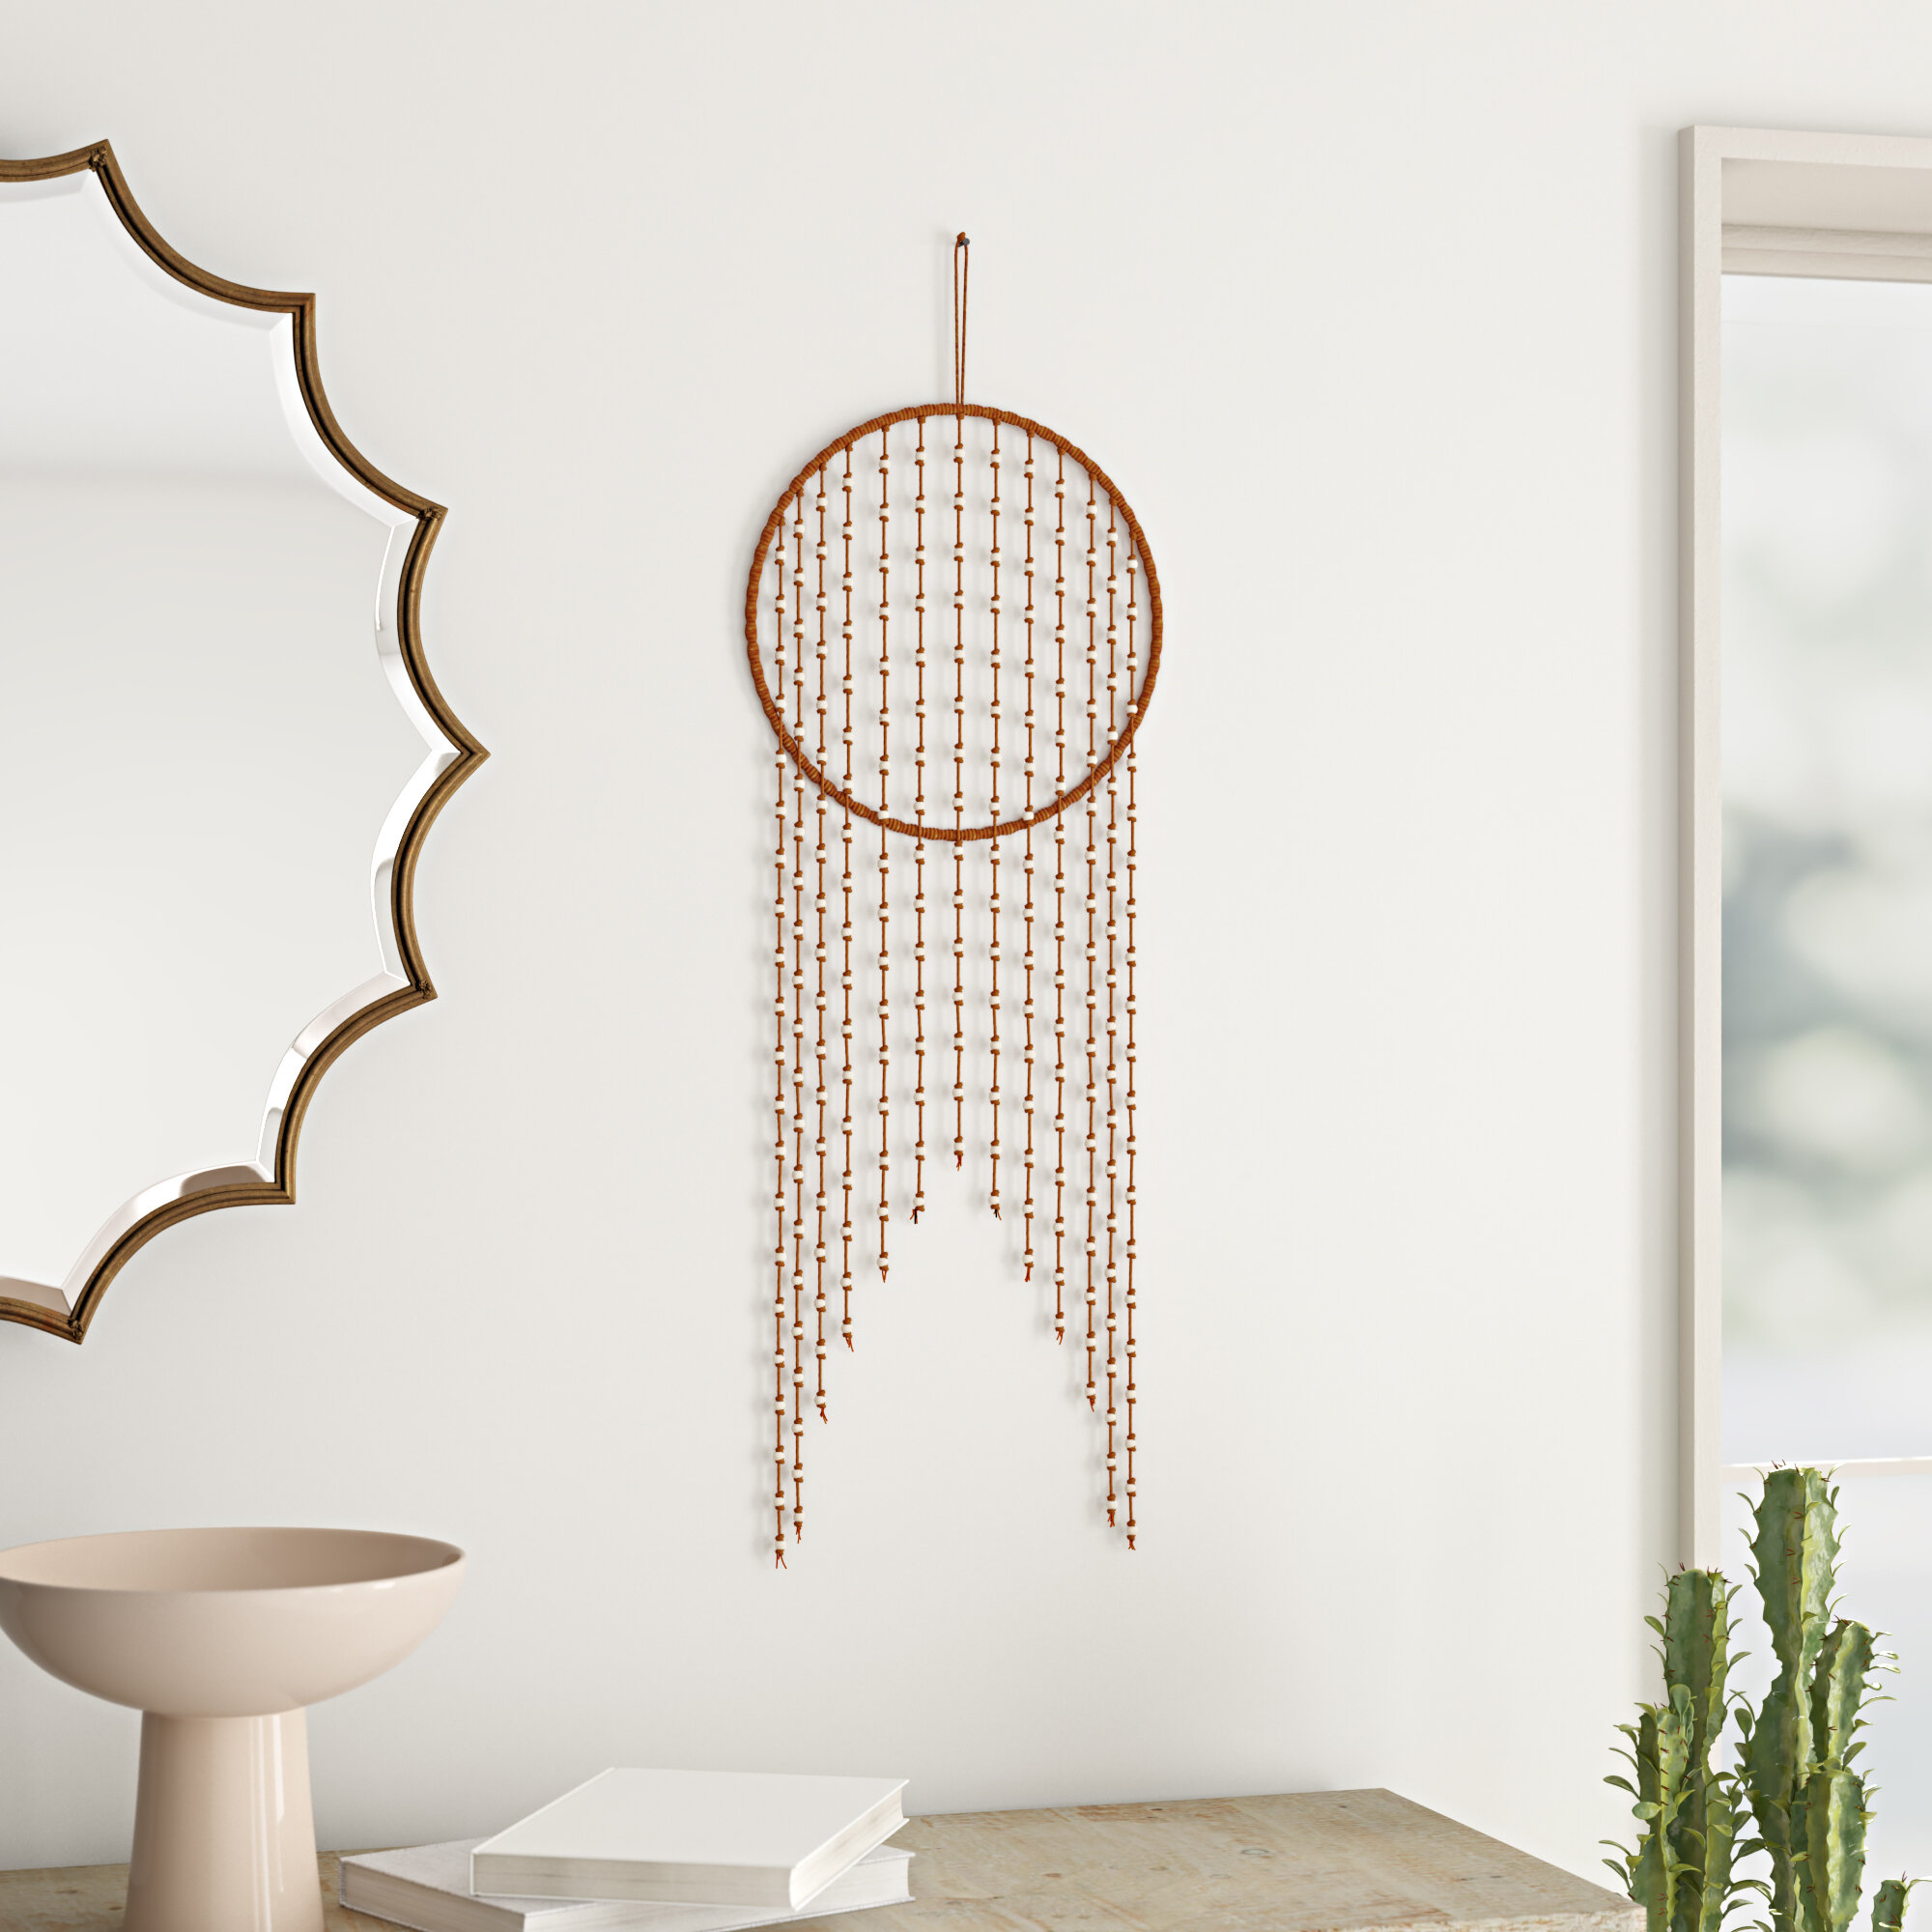 Wayfair | Wall Hanging Tapestries You'll Love In 2021 Within Newest Blended Fabric Hohl Wall Hangings With Rod (View 3 of 20)